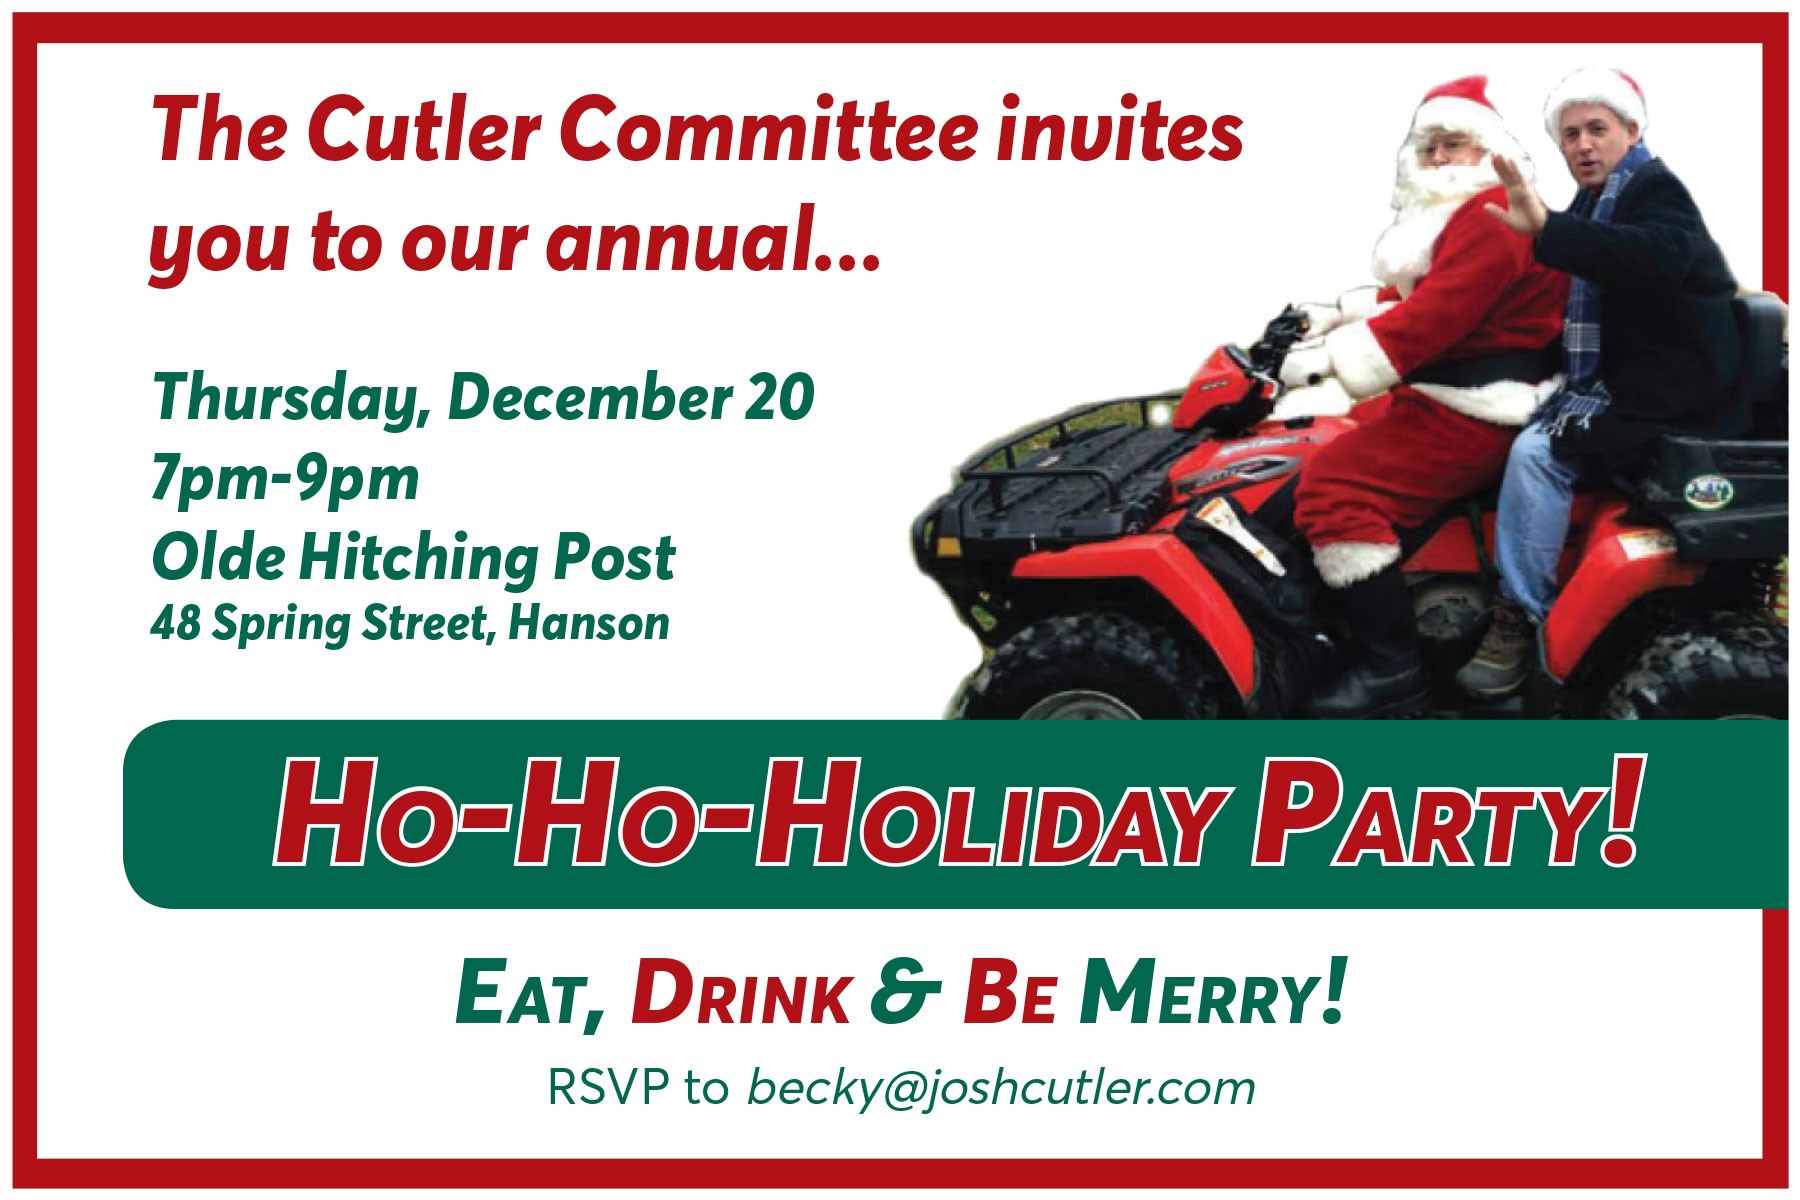 Cutler-Holiday-party-1.jpg